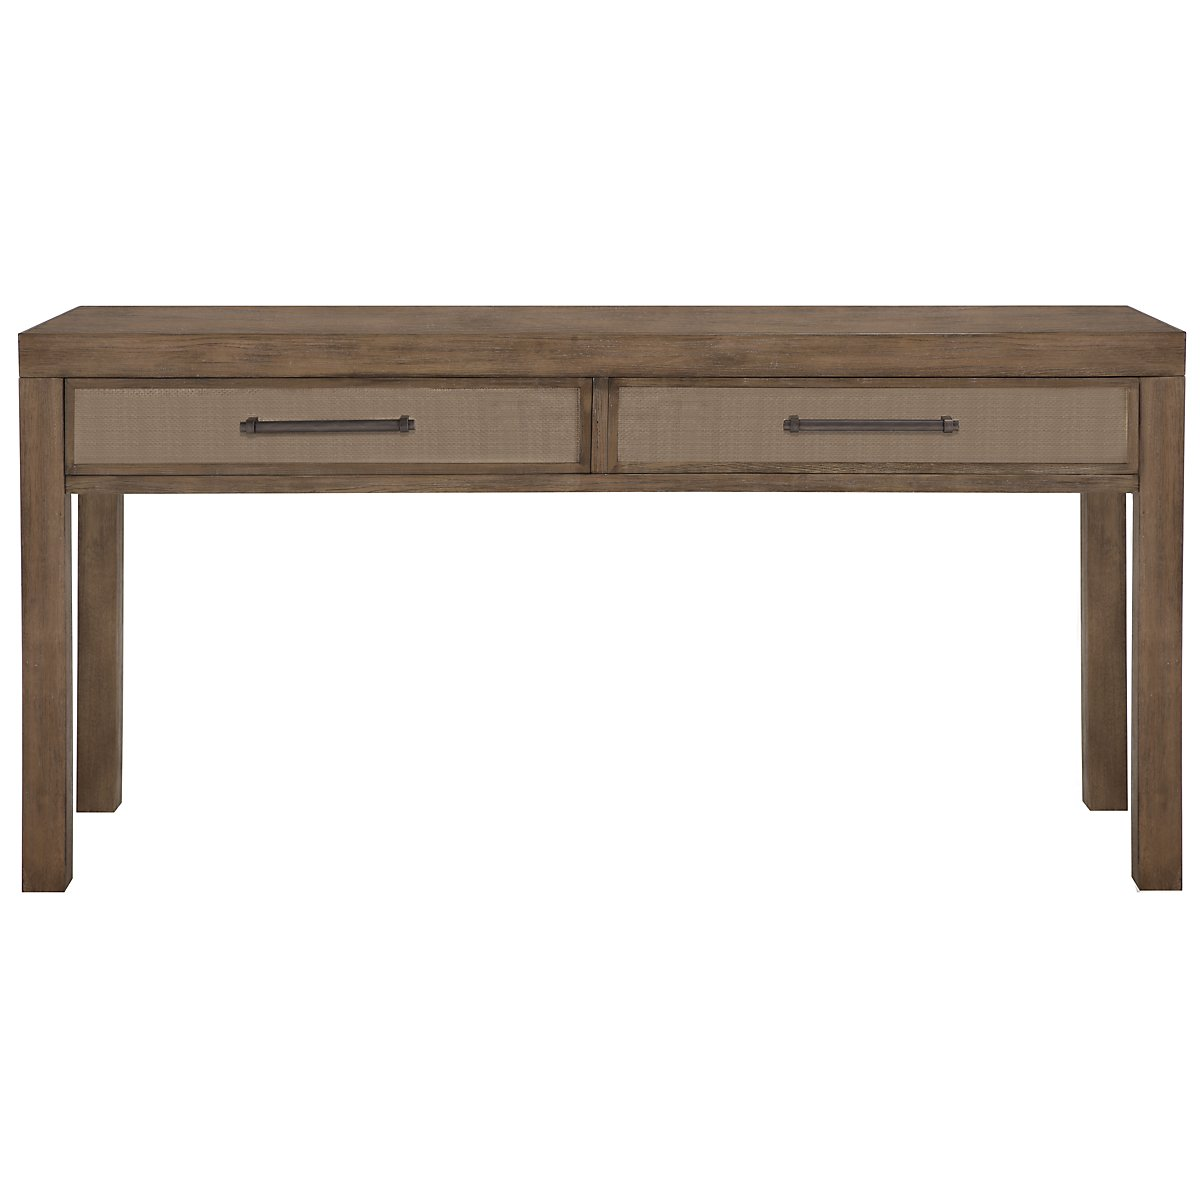 Mirabelle Light Tone Sofa Table